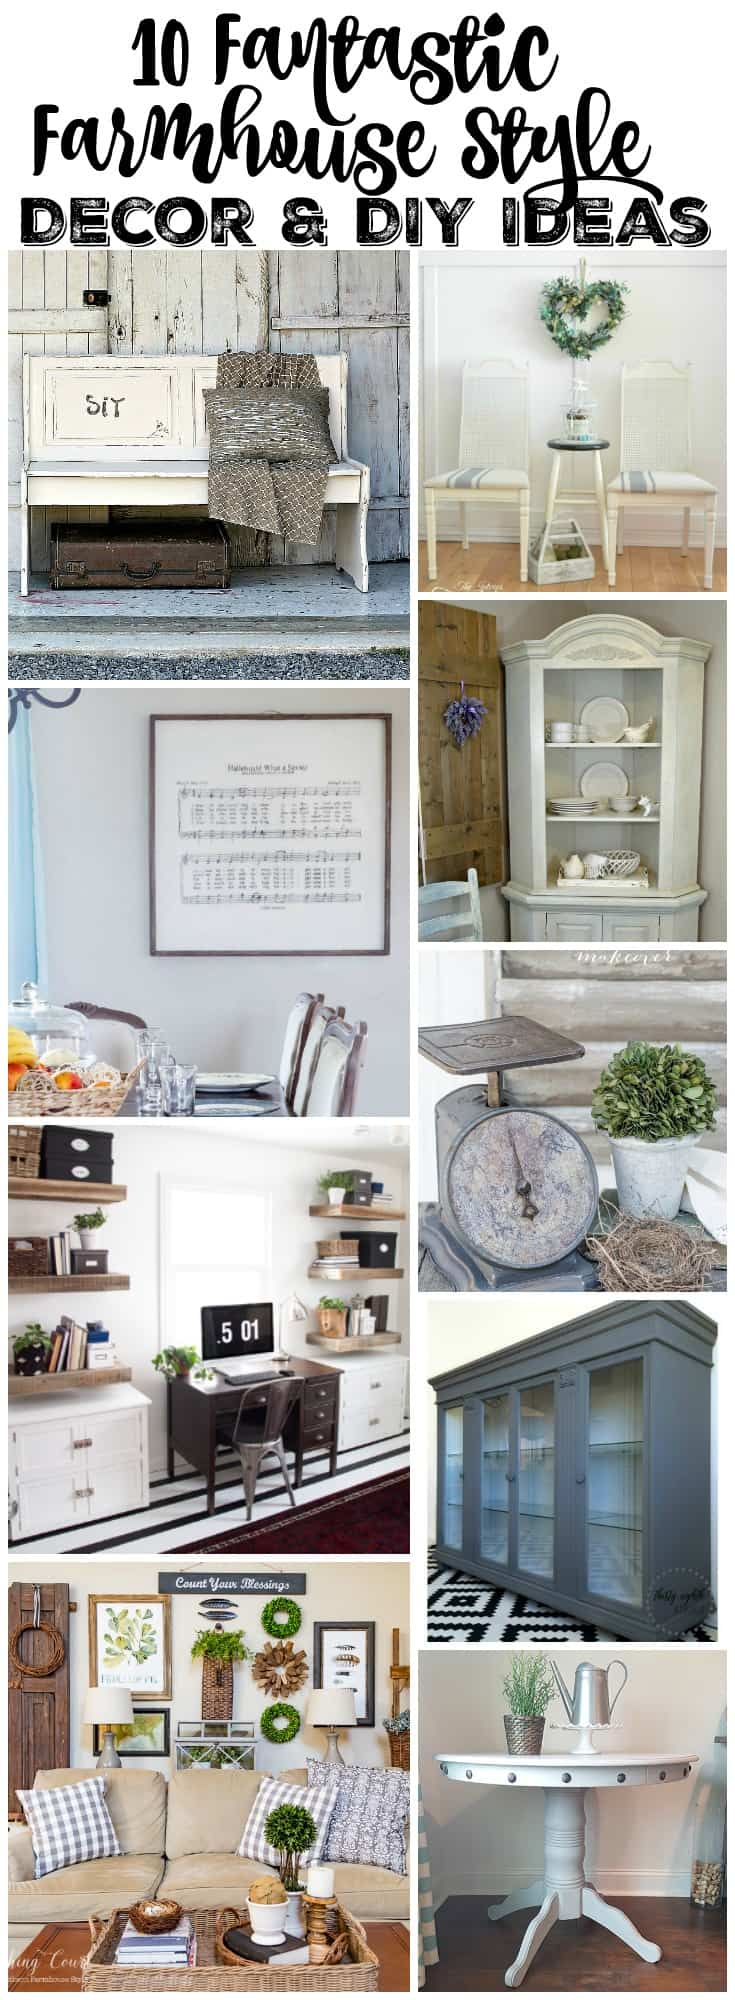 10 Fantastic Farmhouse Style Decor DIY Ideas